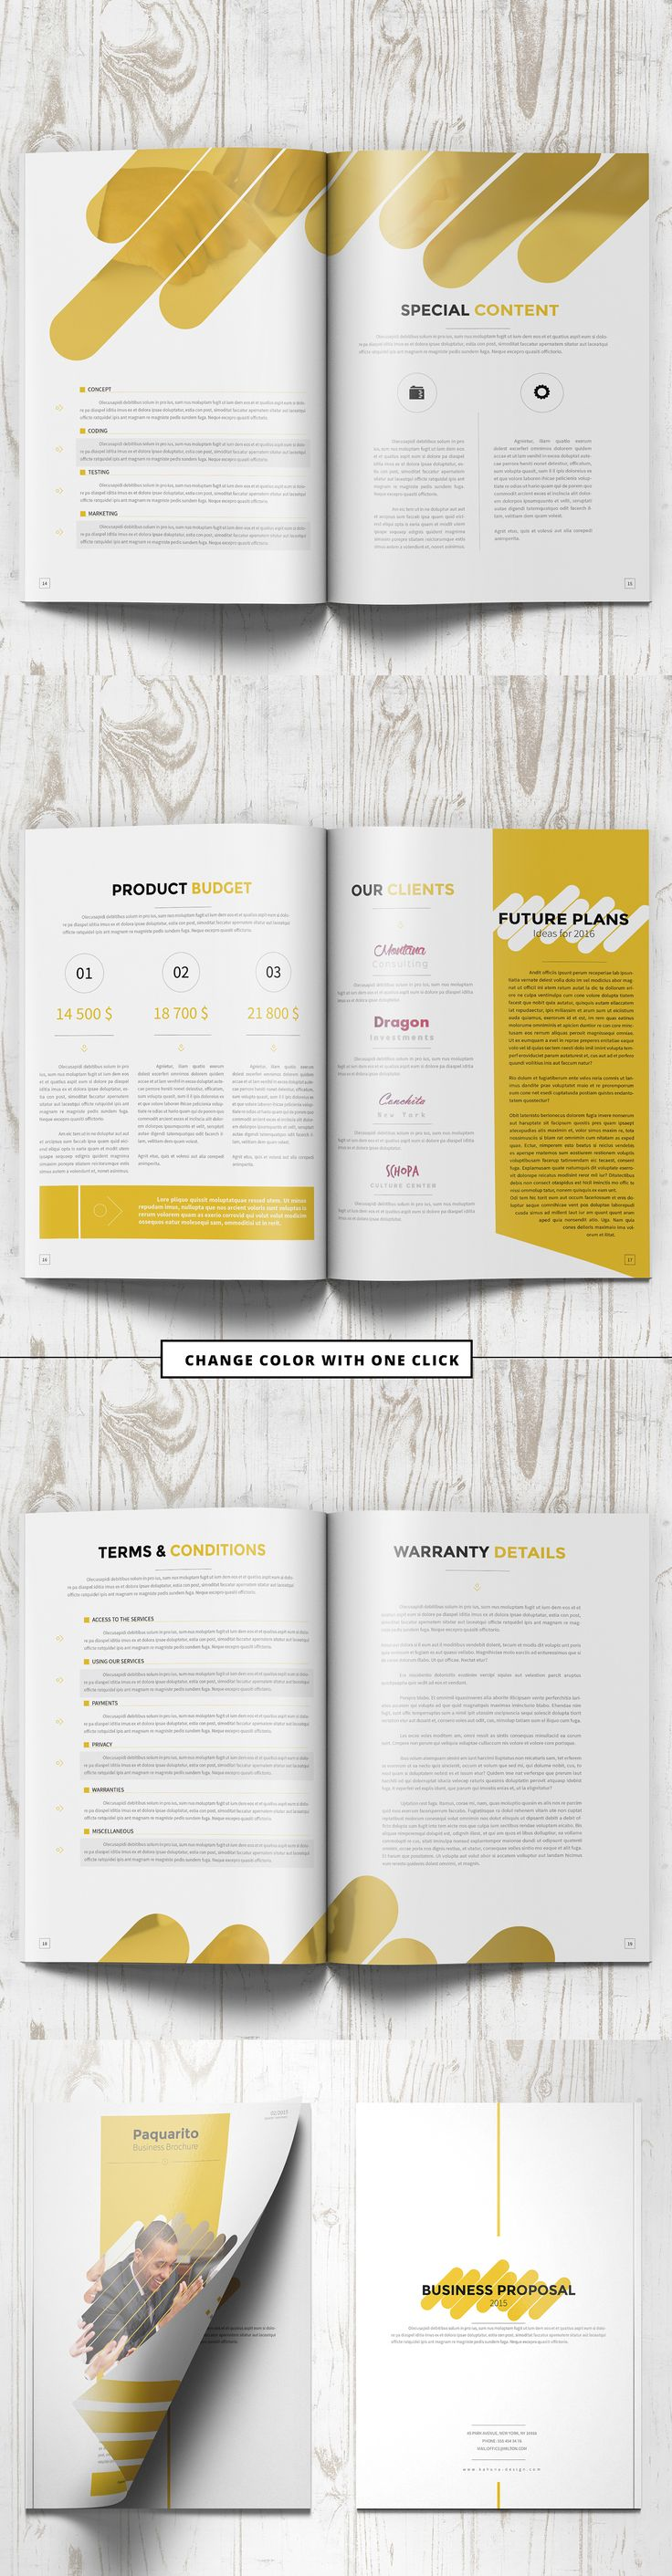 letter size brochure template - 25 best ideas about business proposal template on